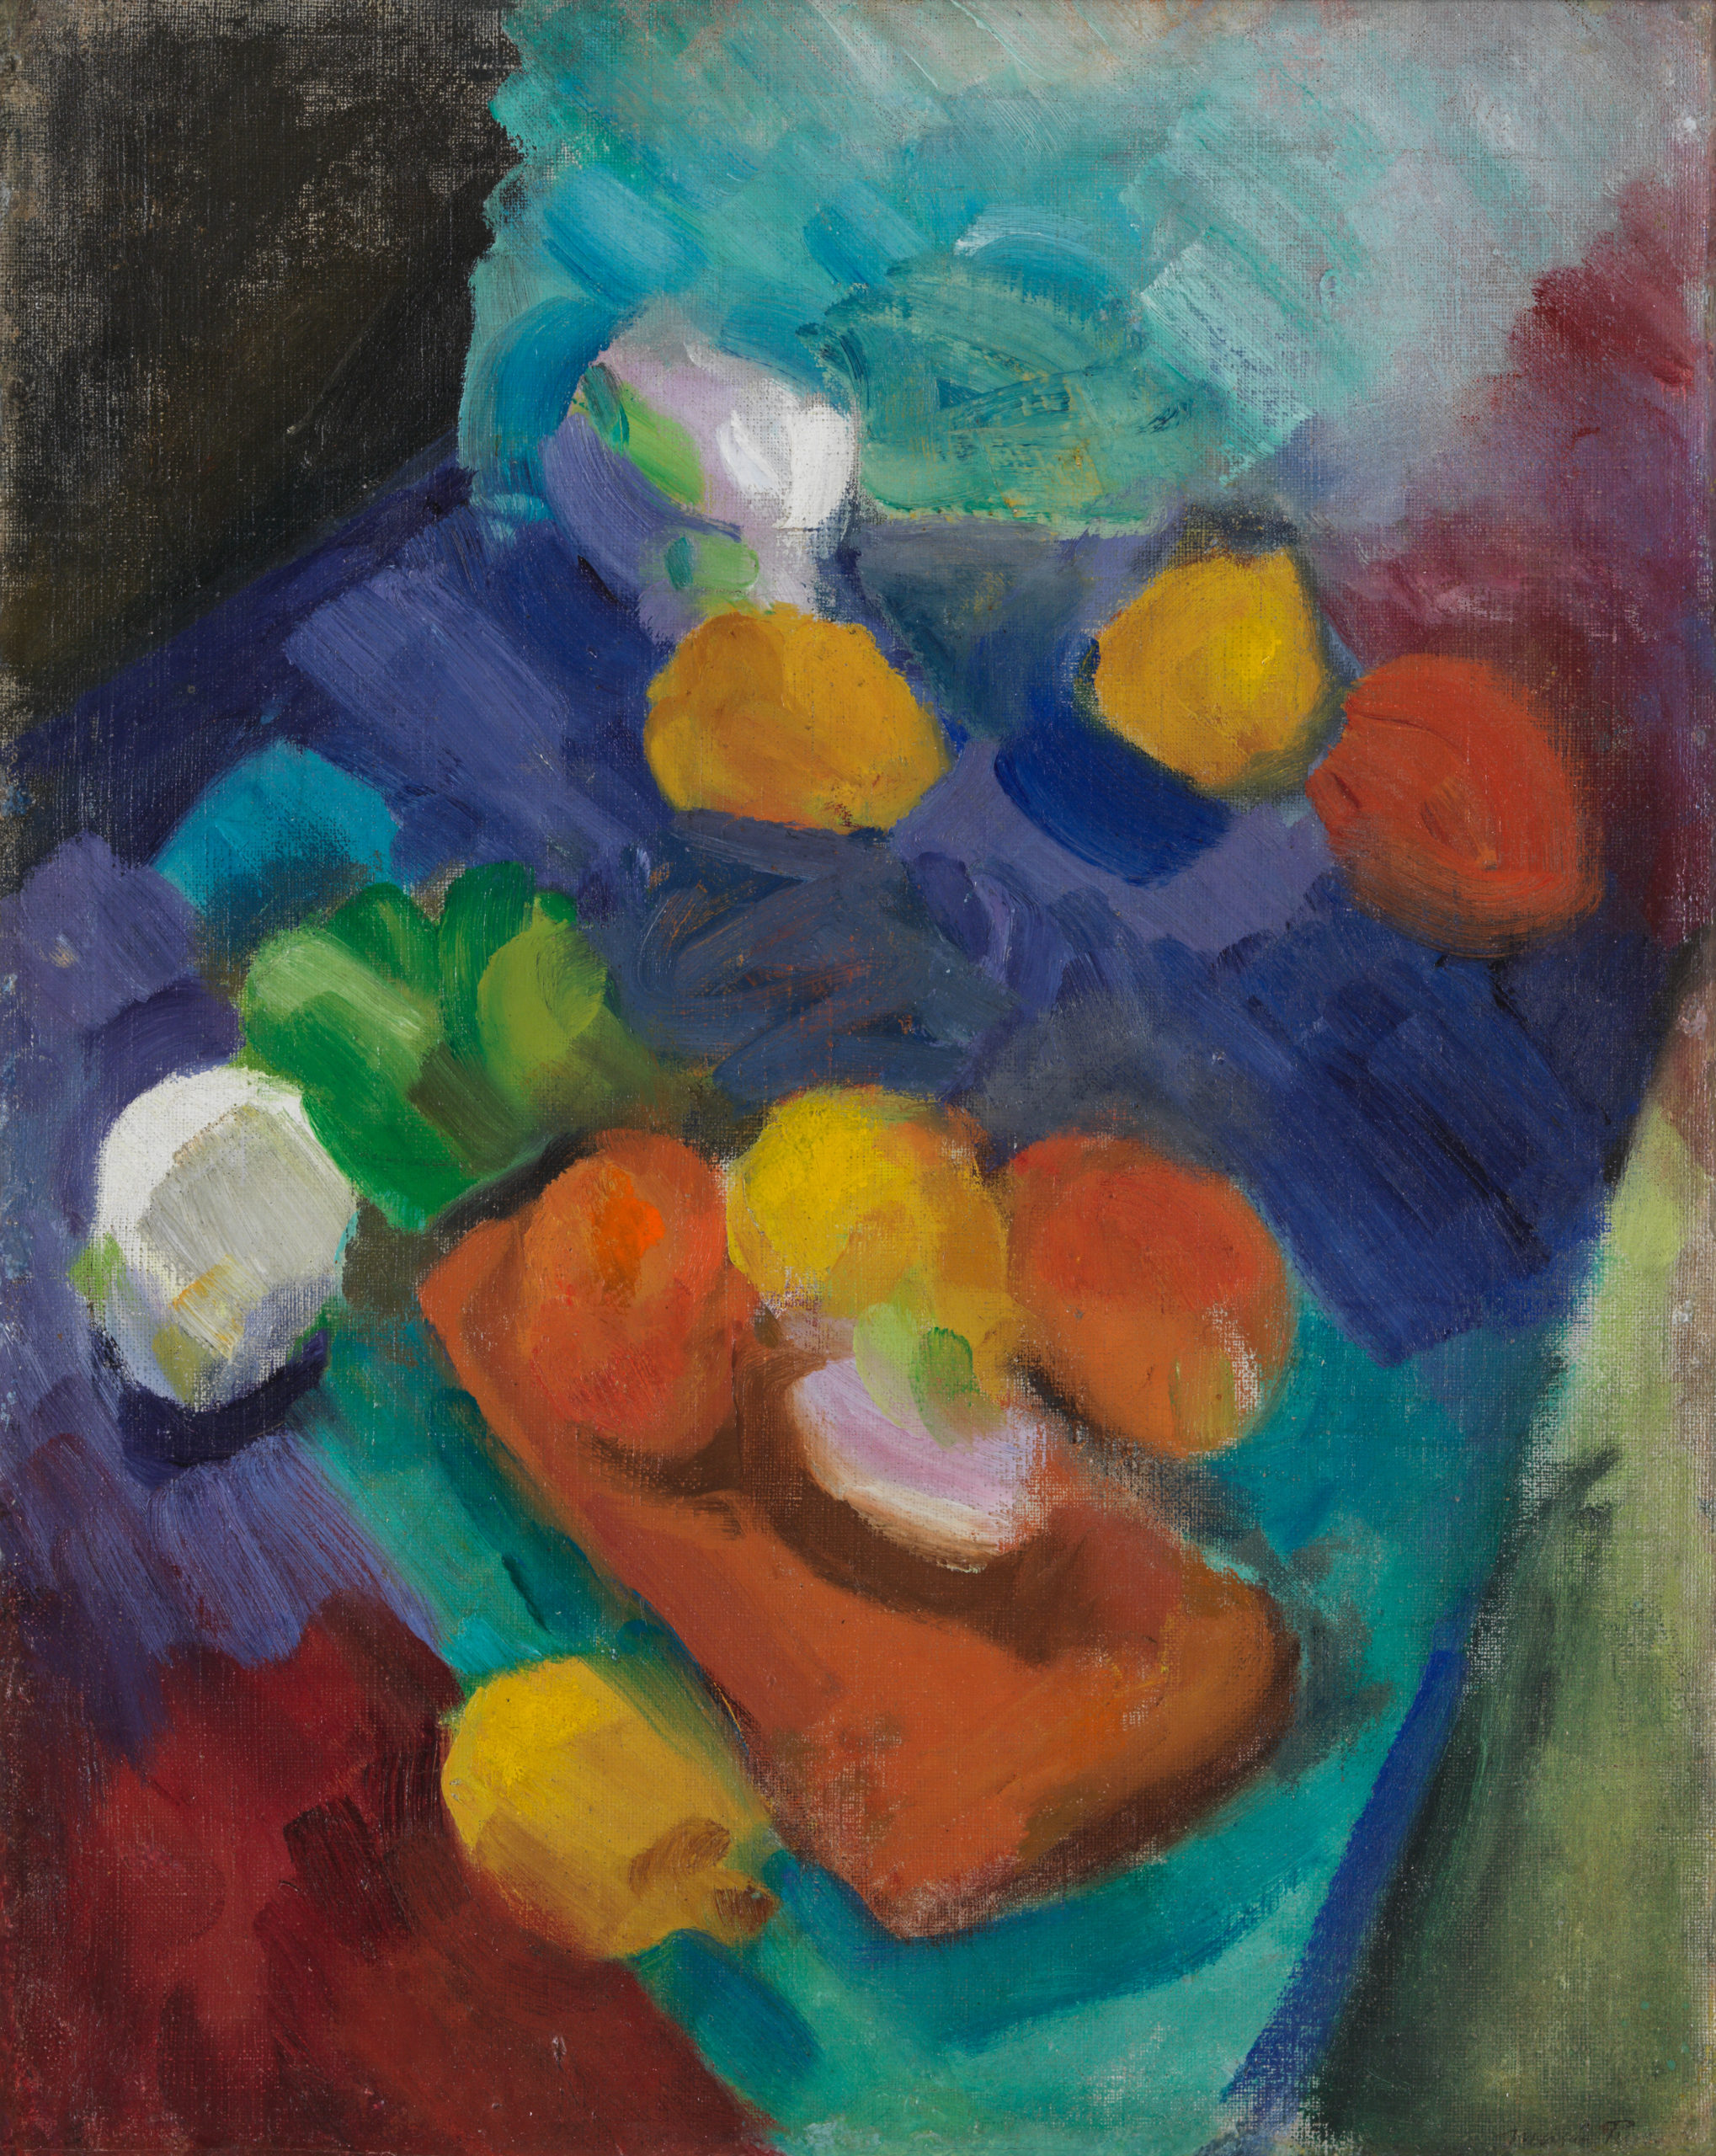 Round yellow and orange fruits on a background of blues and reds painted with thick brushstrokes.